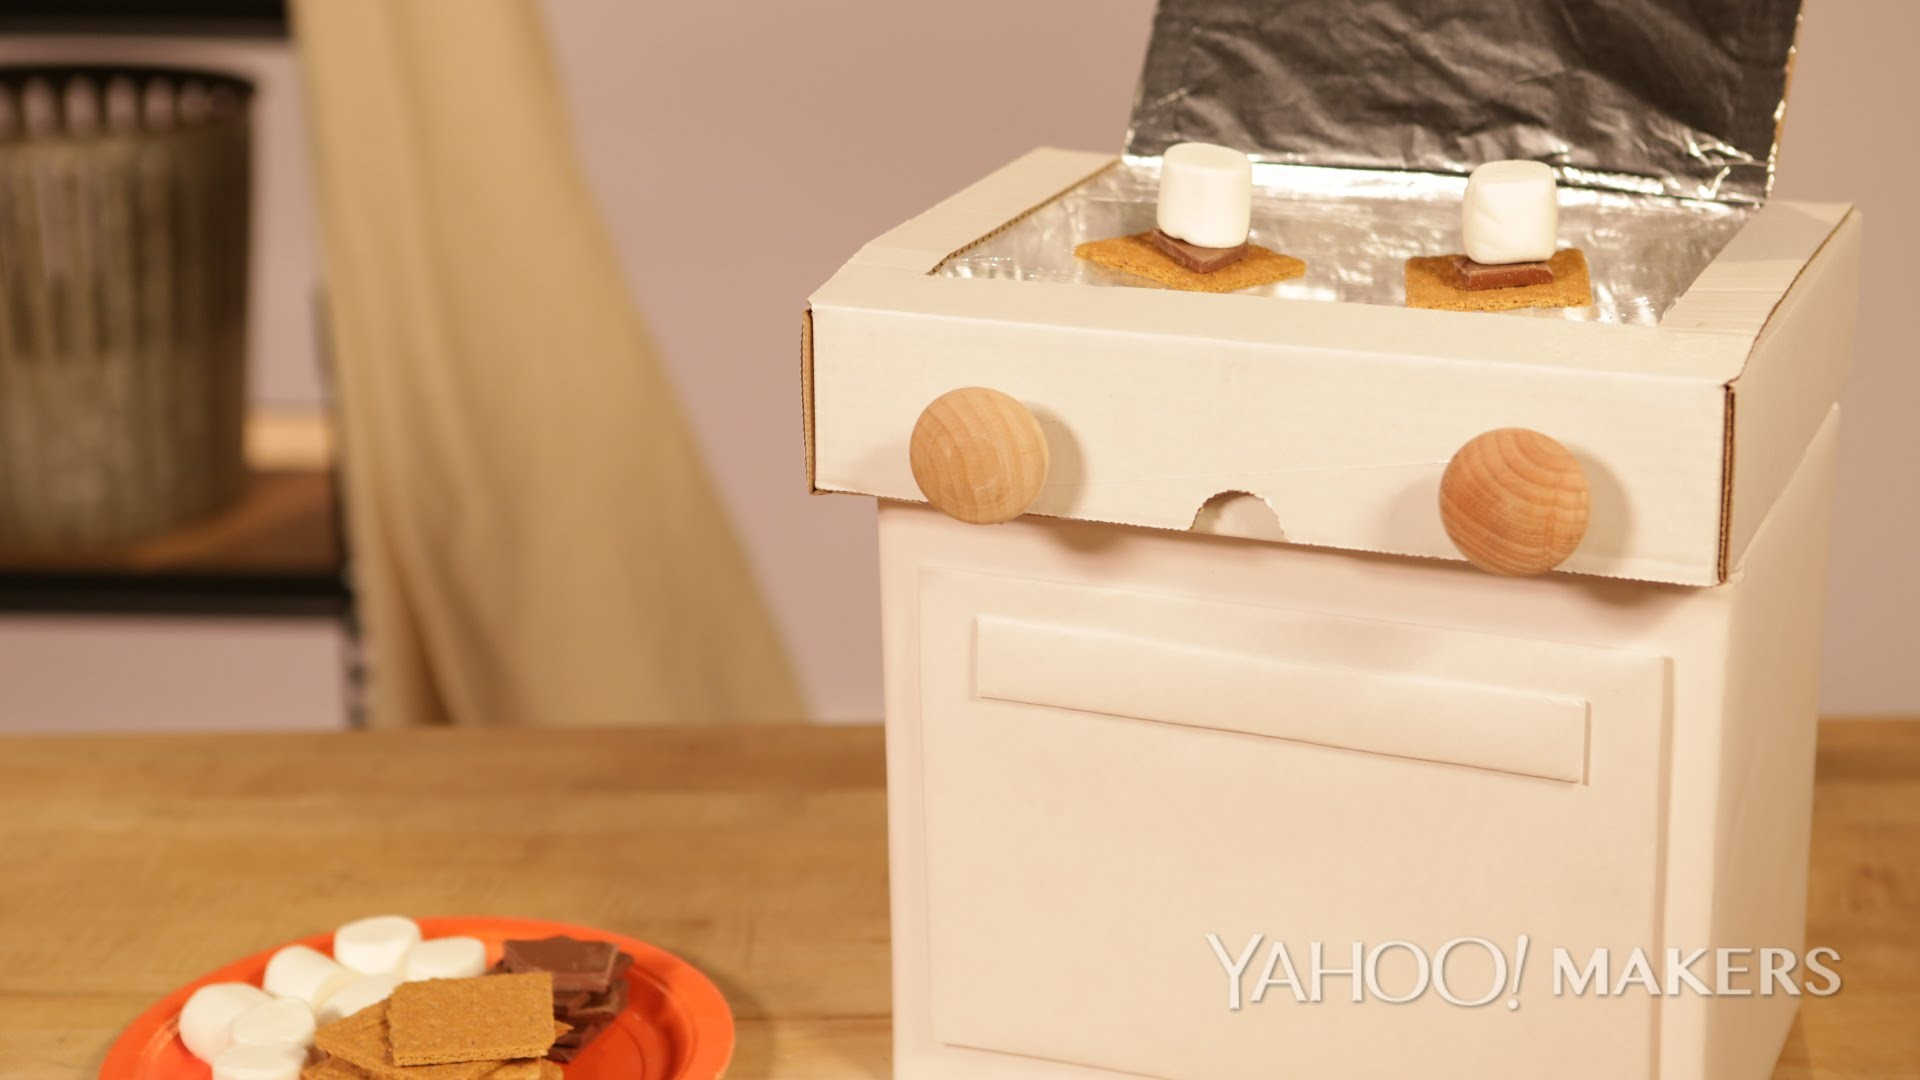 A DIY Solar-Powered Easy Bake Oven For The Best S'mores Under the Sun